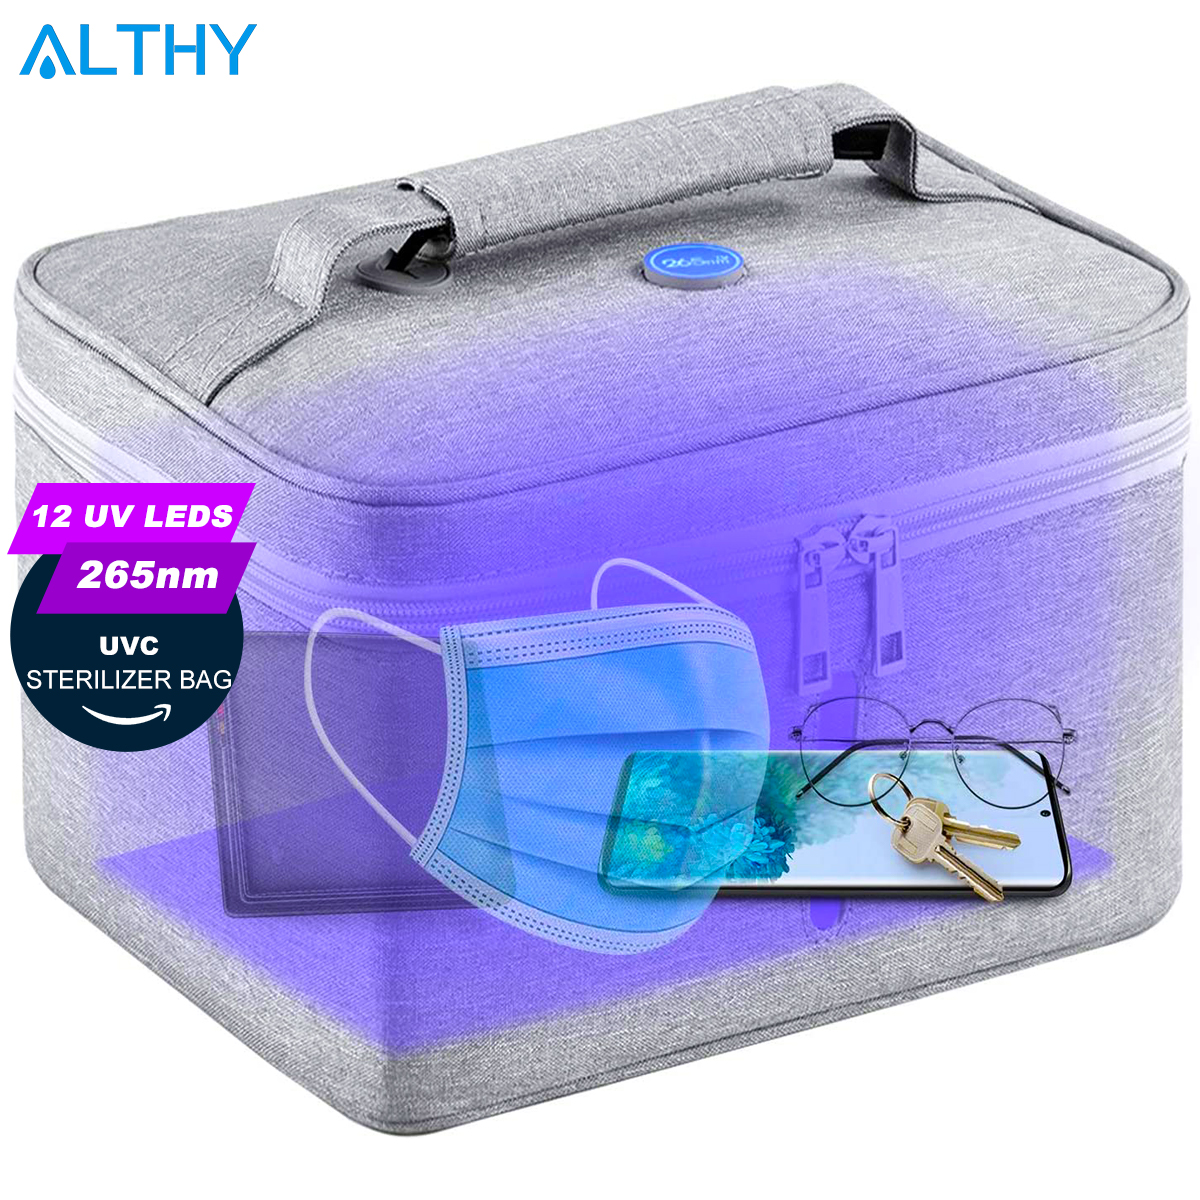 ALTHY 265nm <font><b>UV</b></font> LED Sterilizer Bag Sanitizer <font><b>Box</b></font> UVC light lamp USB Rechargeable Disinfection for Phone Bottle Jewelry Mask etc. image